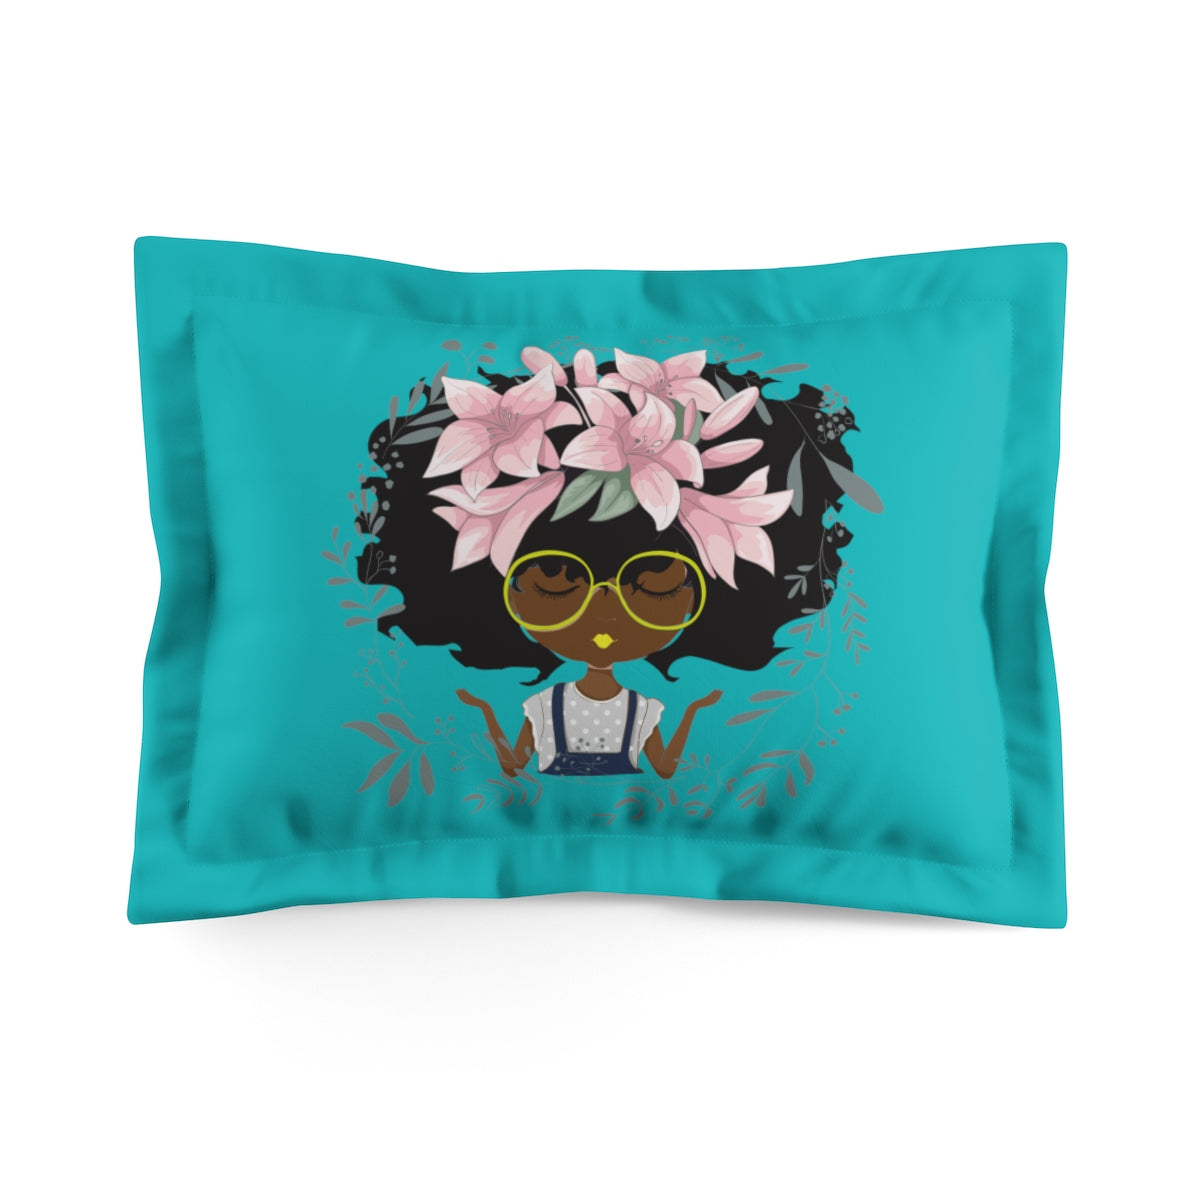 Lily Microfiber Pillow Sham-Teal